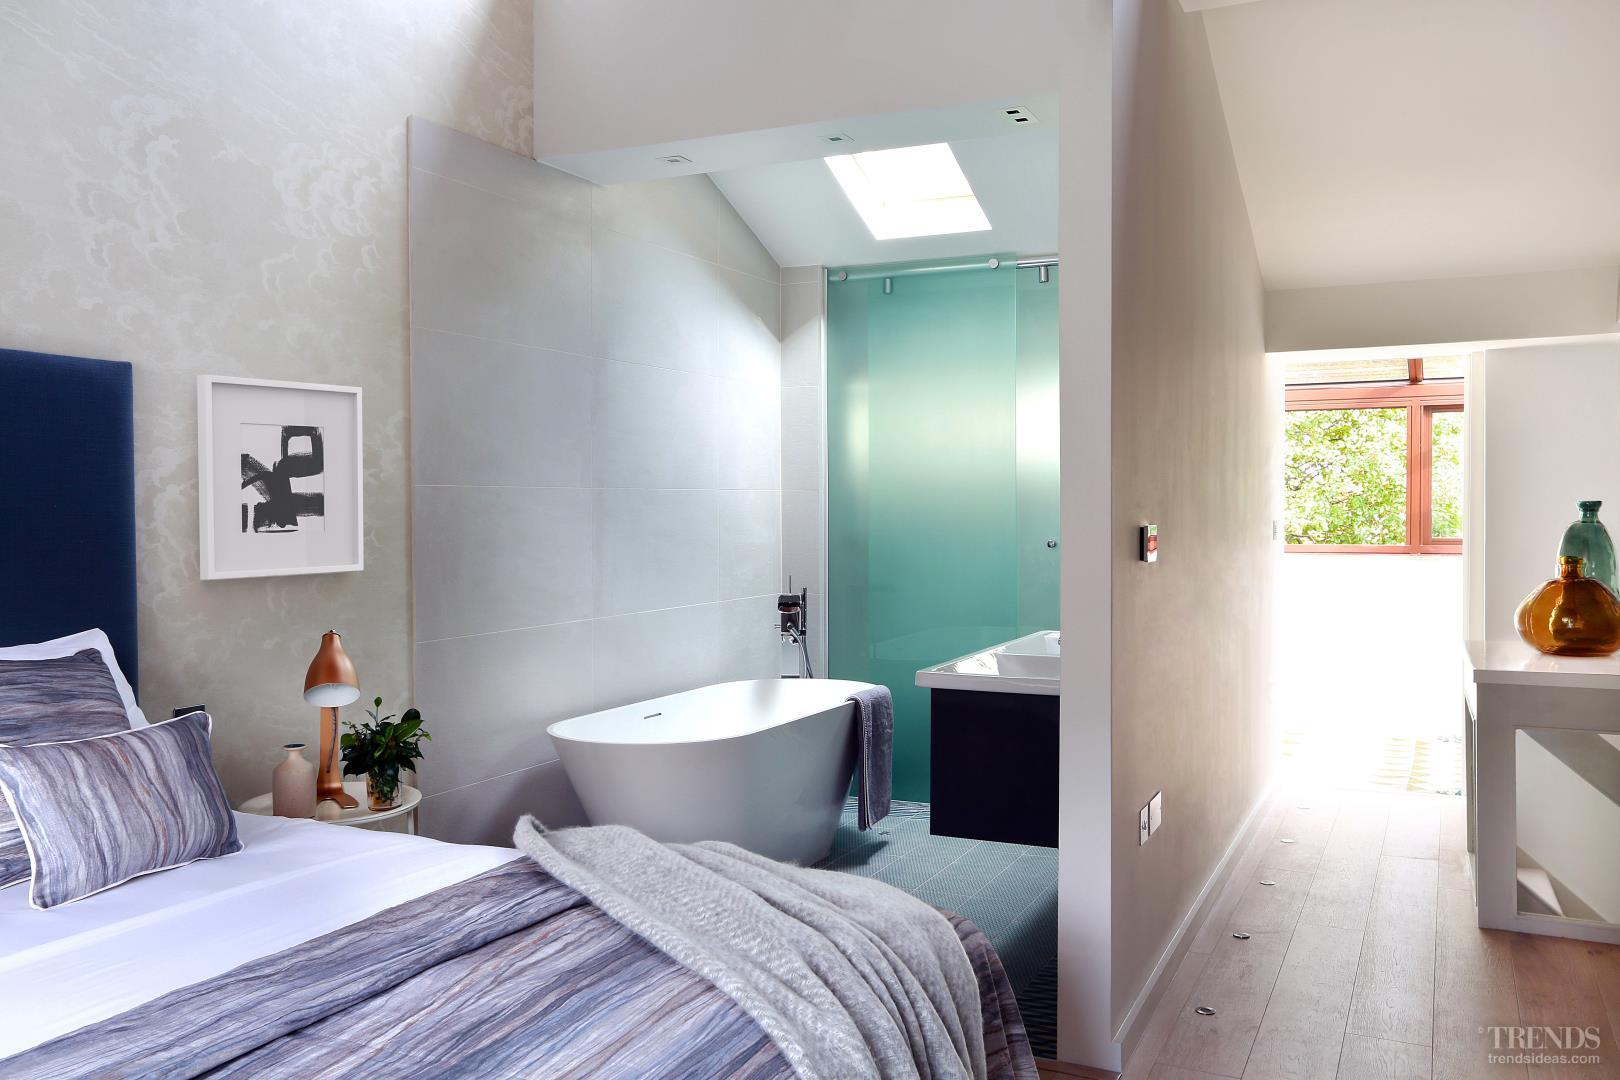 Contemporary renovation with open-plan bathroom and bedroom